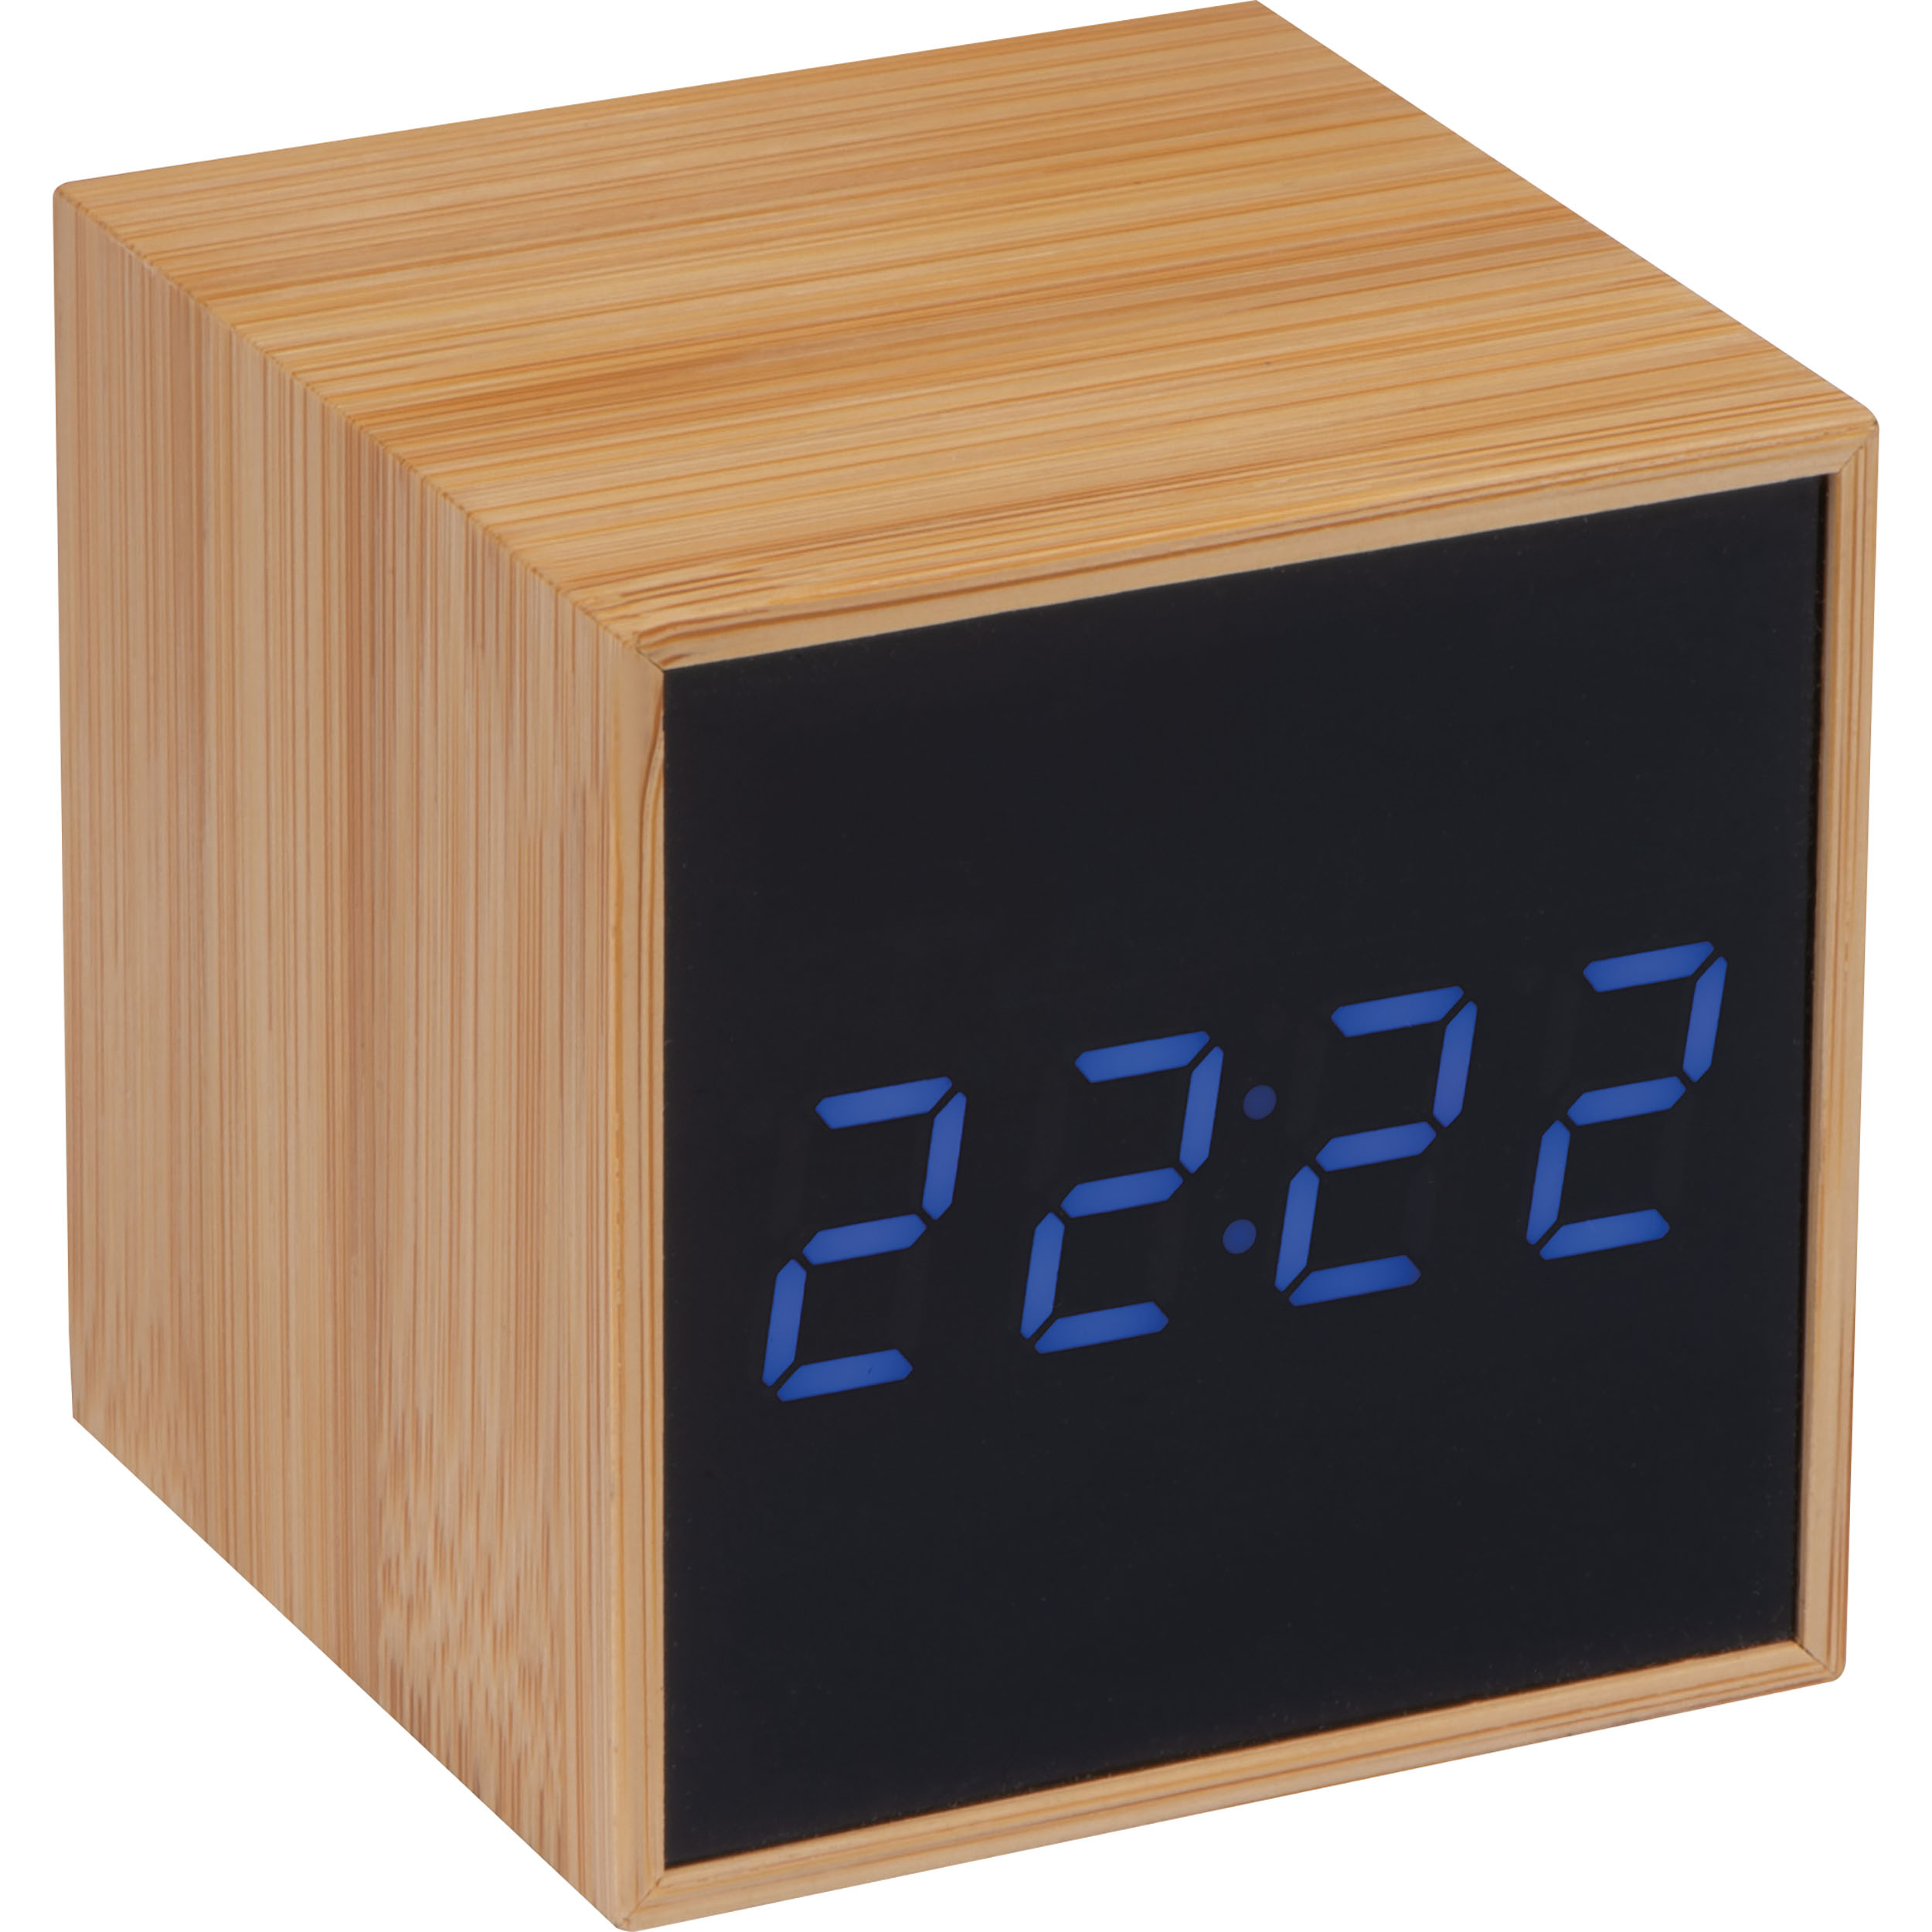 Desk clock with black display and blue LED display